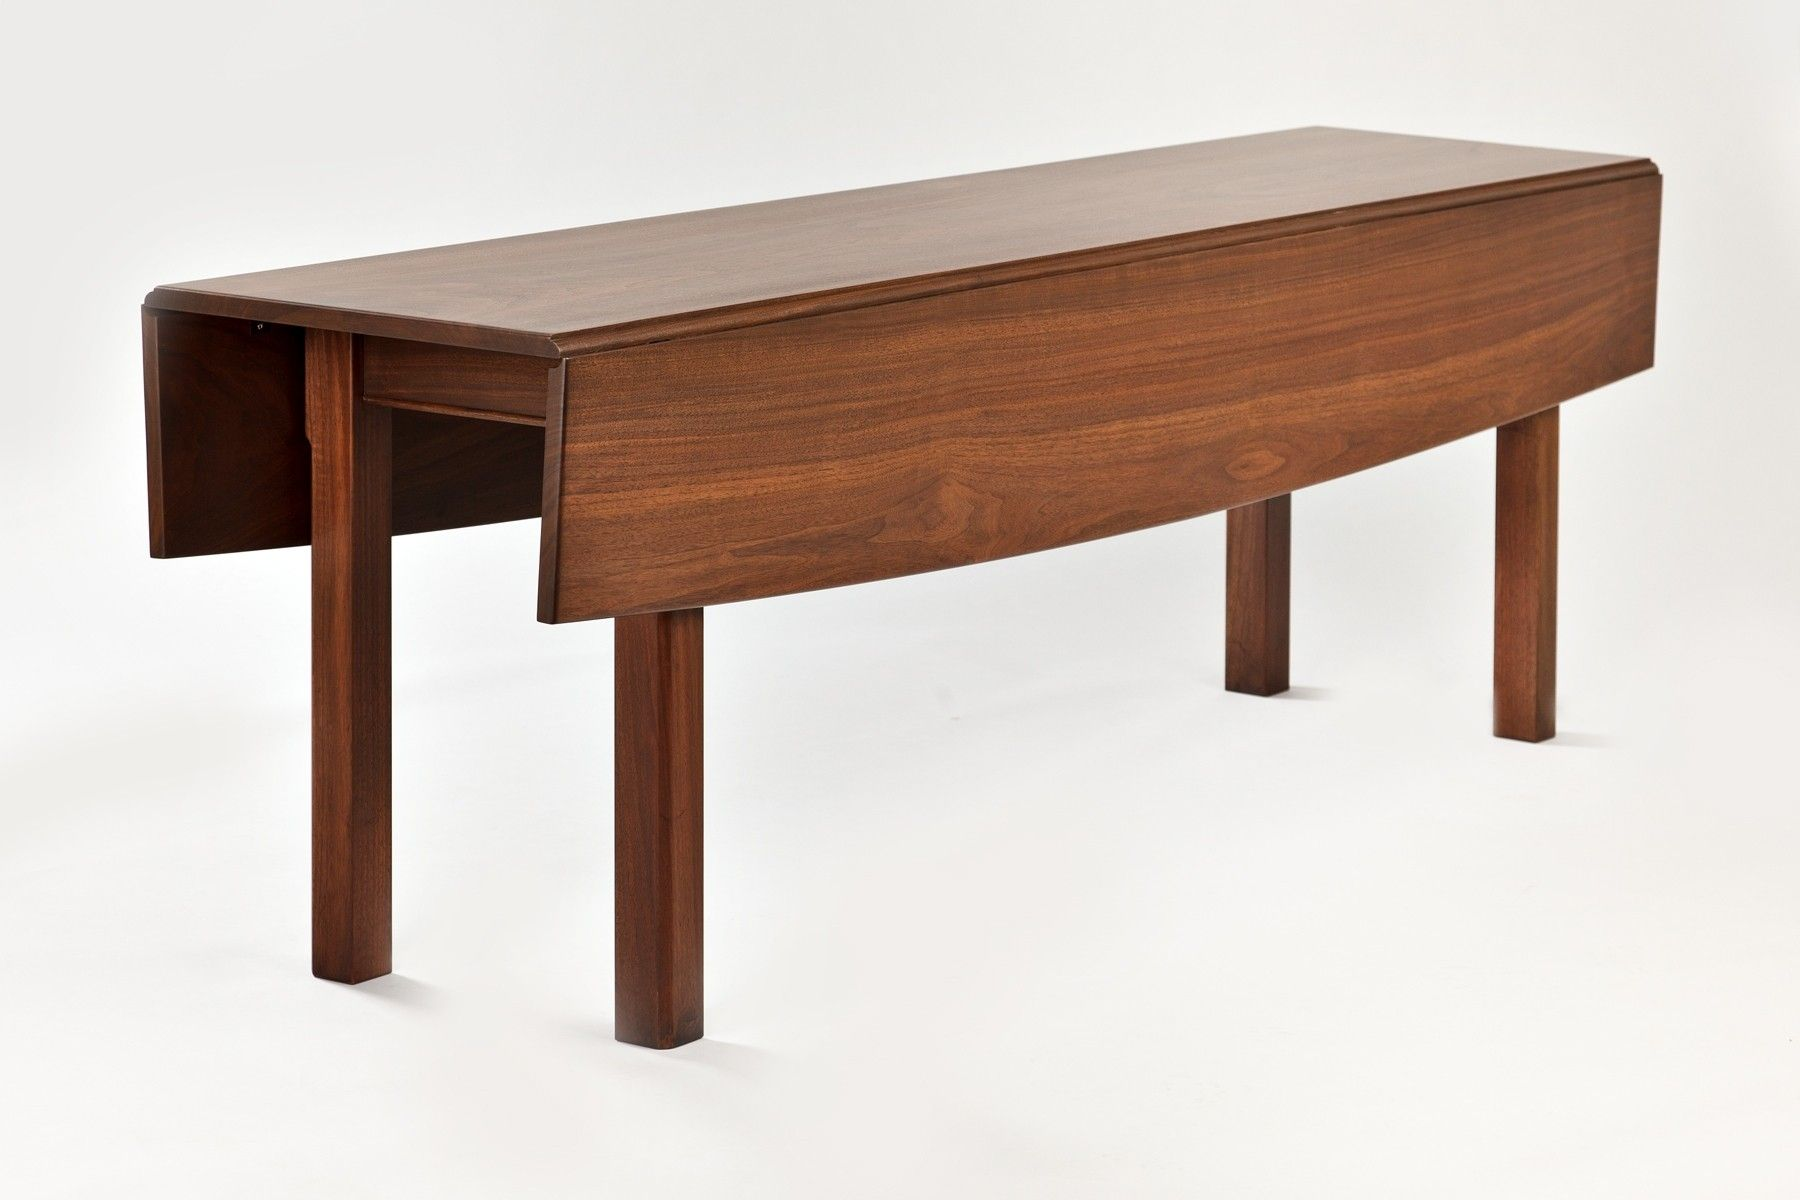 Hand Crafted Walnut Drop Leaf Dining Tabel by Downing Fine  : 6015185561 from www.custommade.com size 1800 x 1200 jpeg 122kB